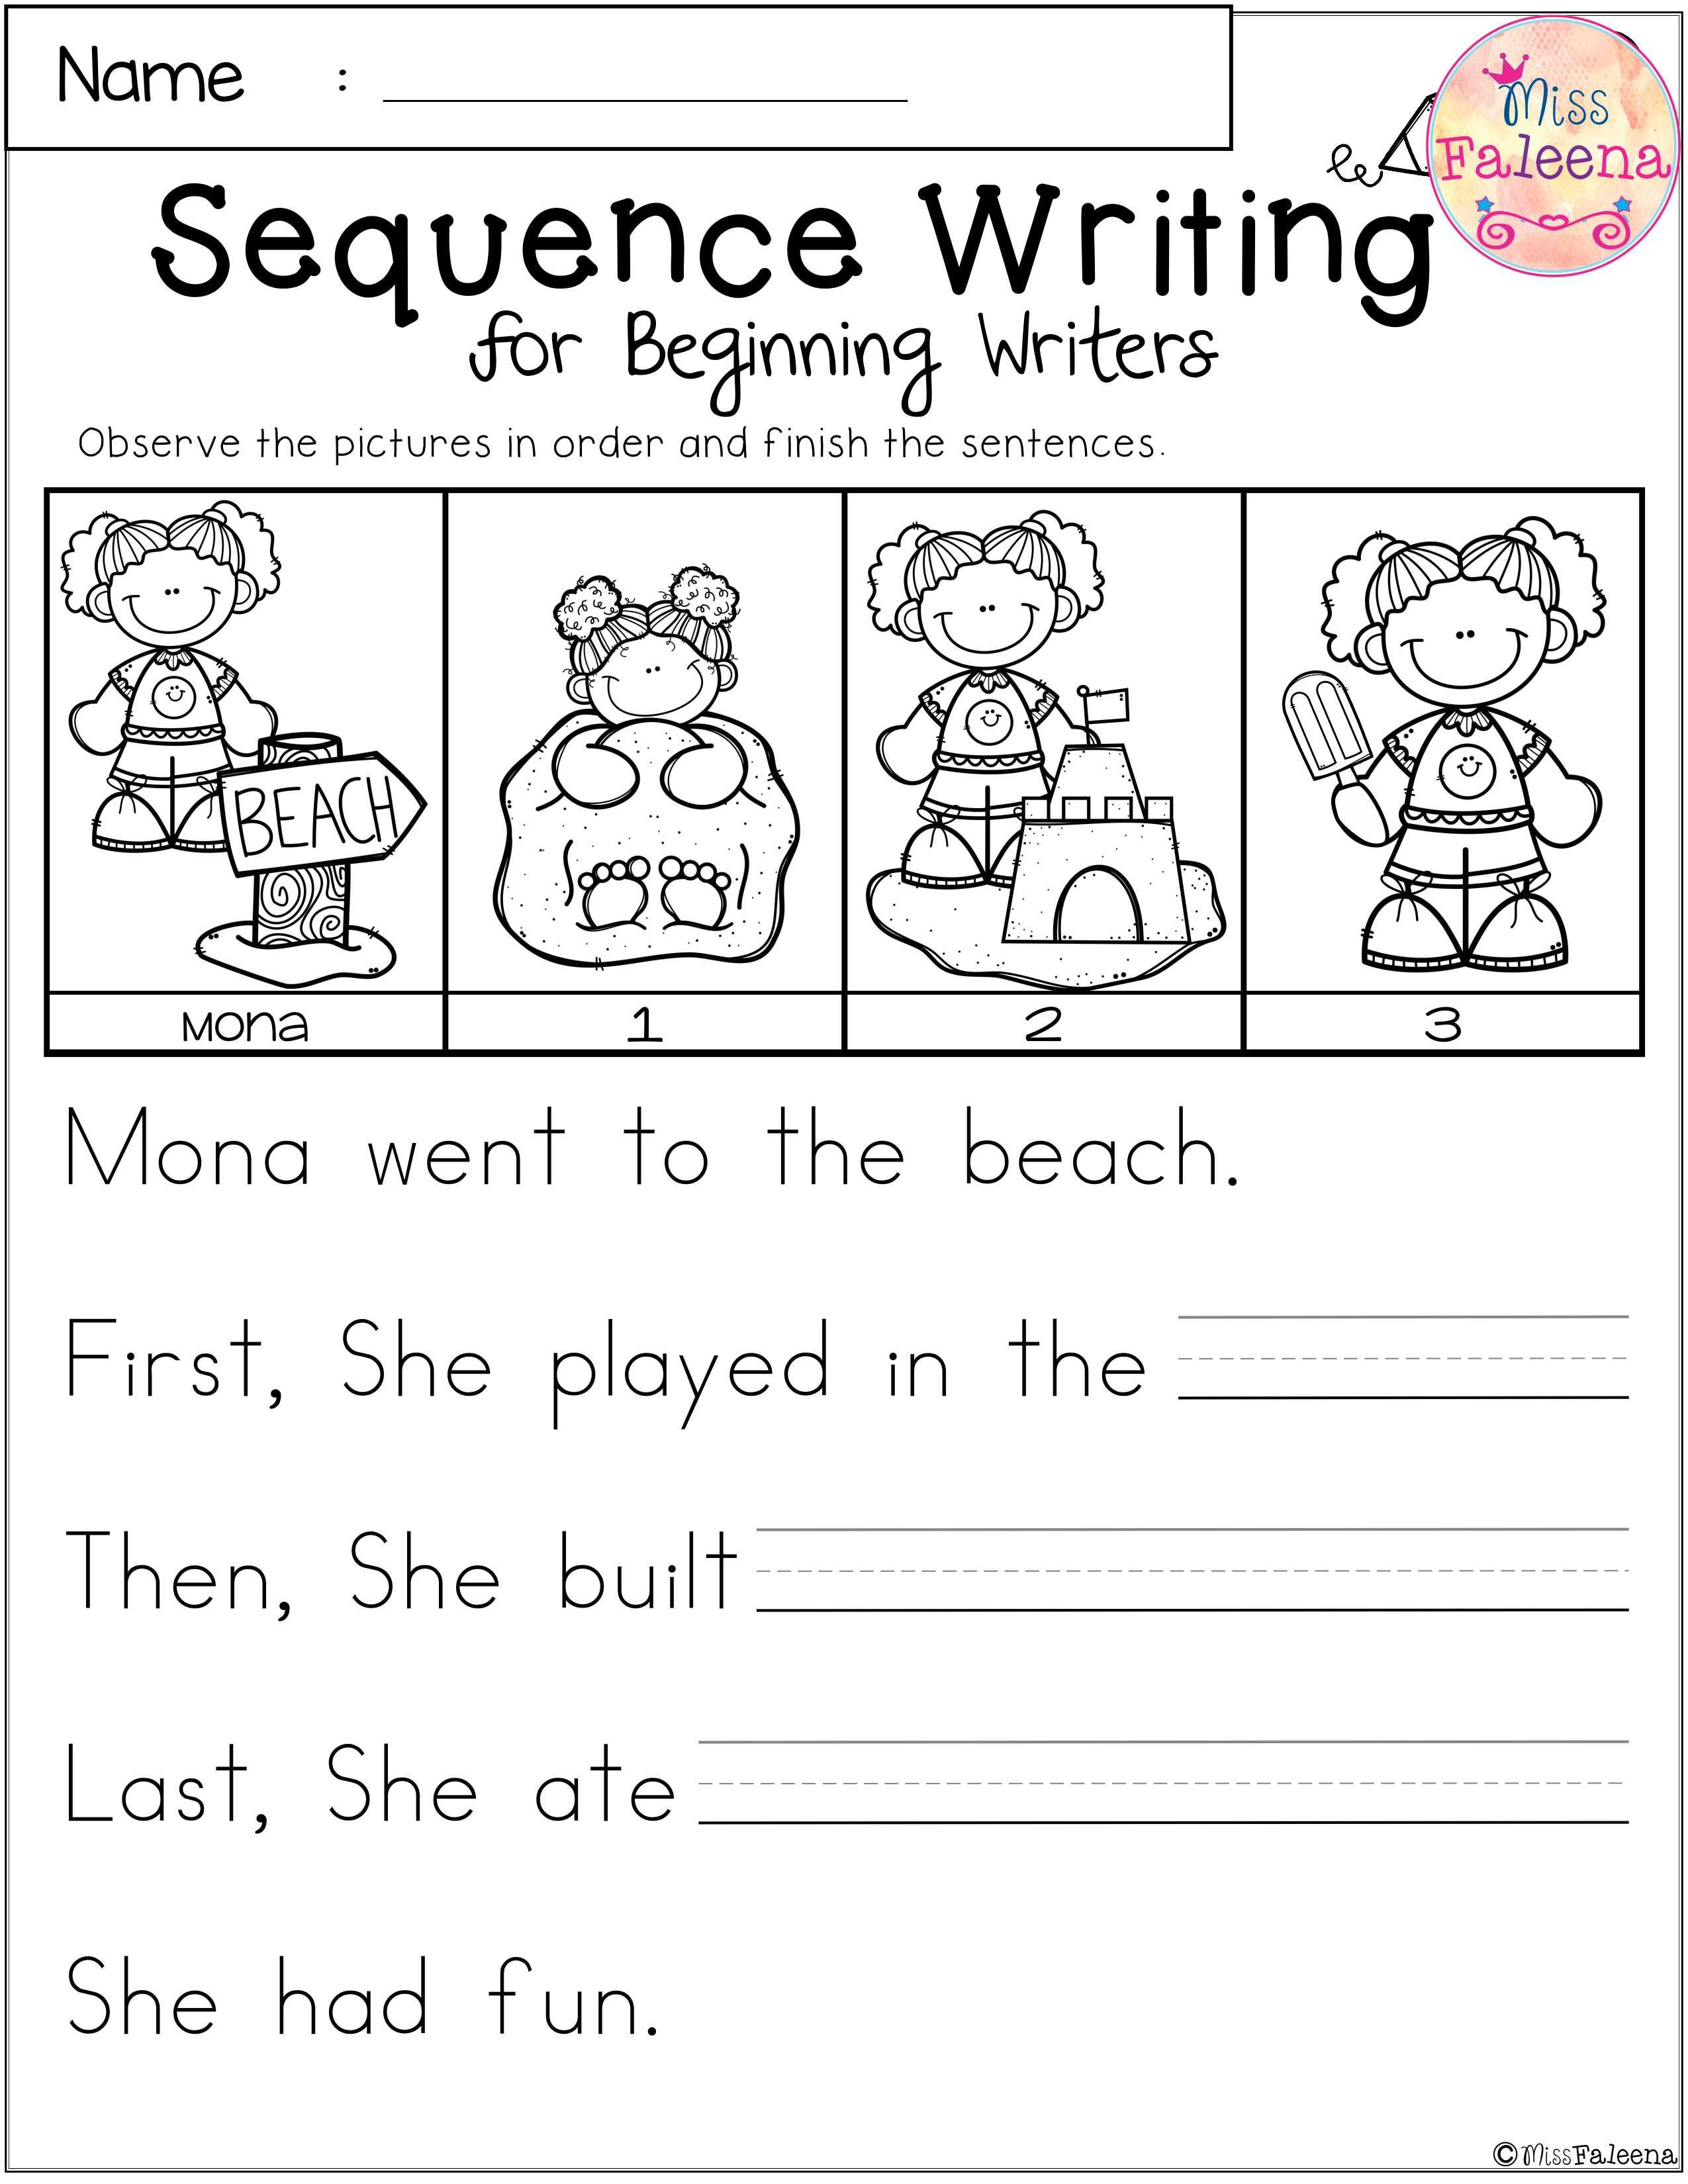 Free Sequence Writing For Beginning Writers | Dear Teachers | Free Printable Sequencing Worksheets For 1St Grade